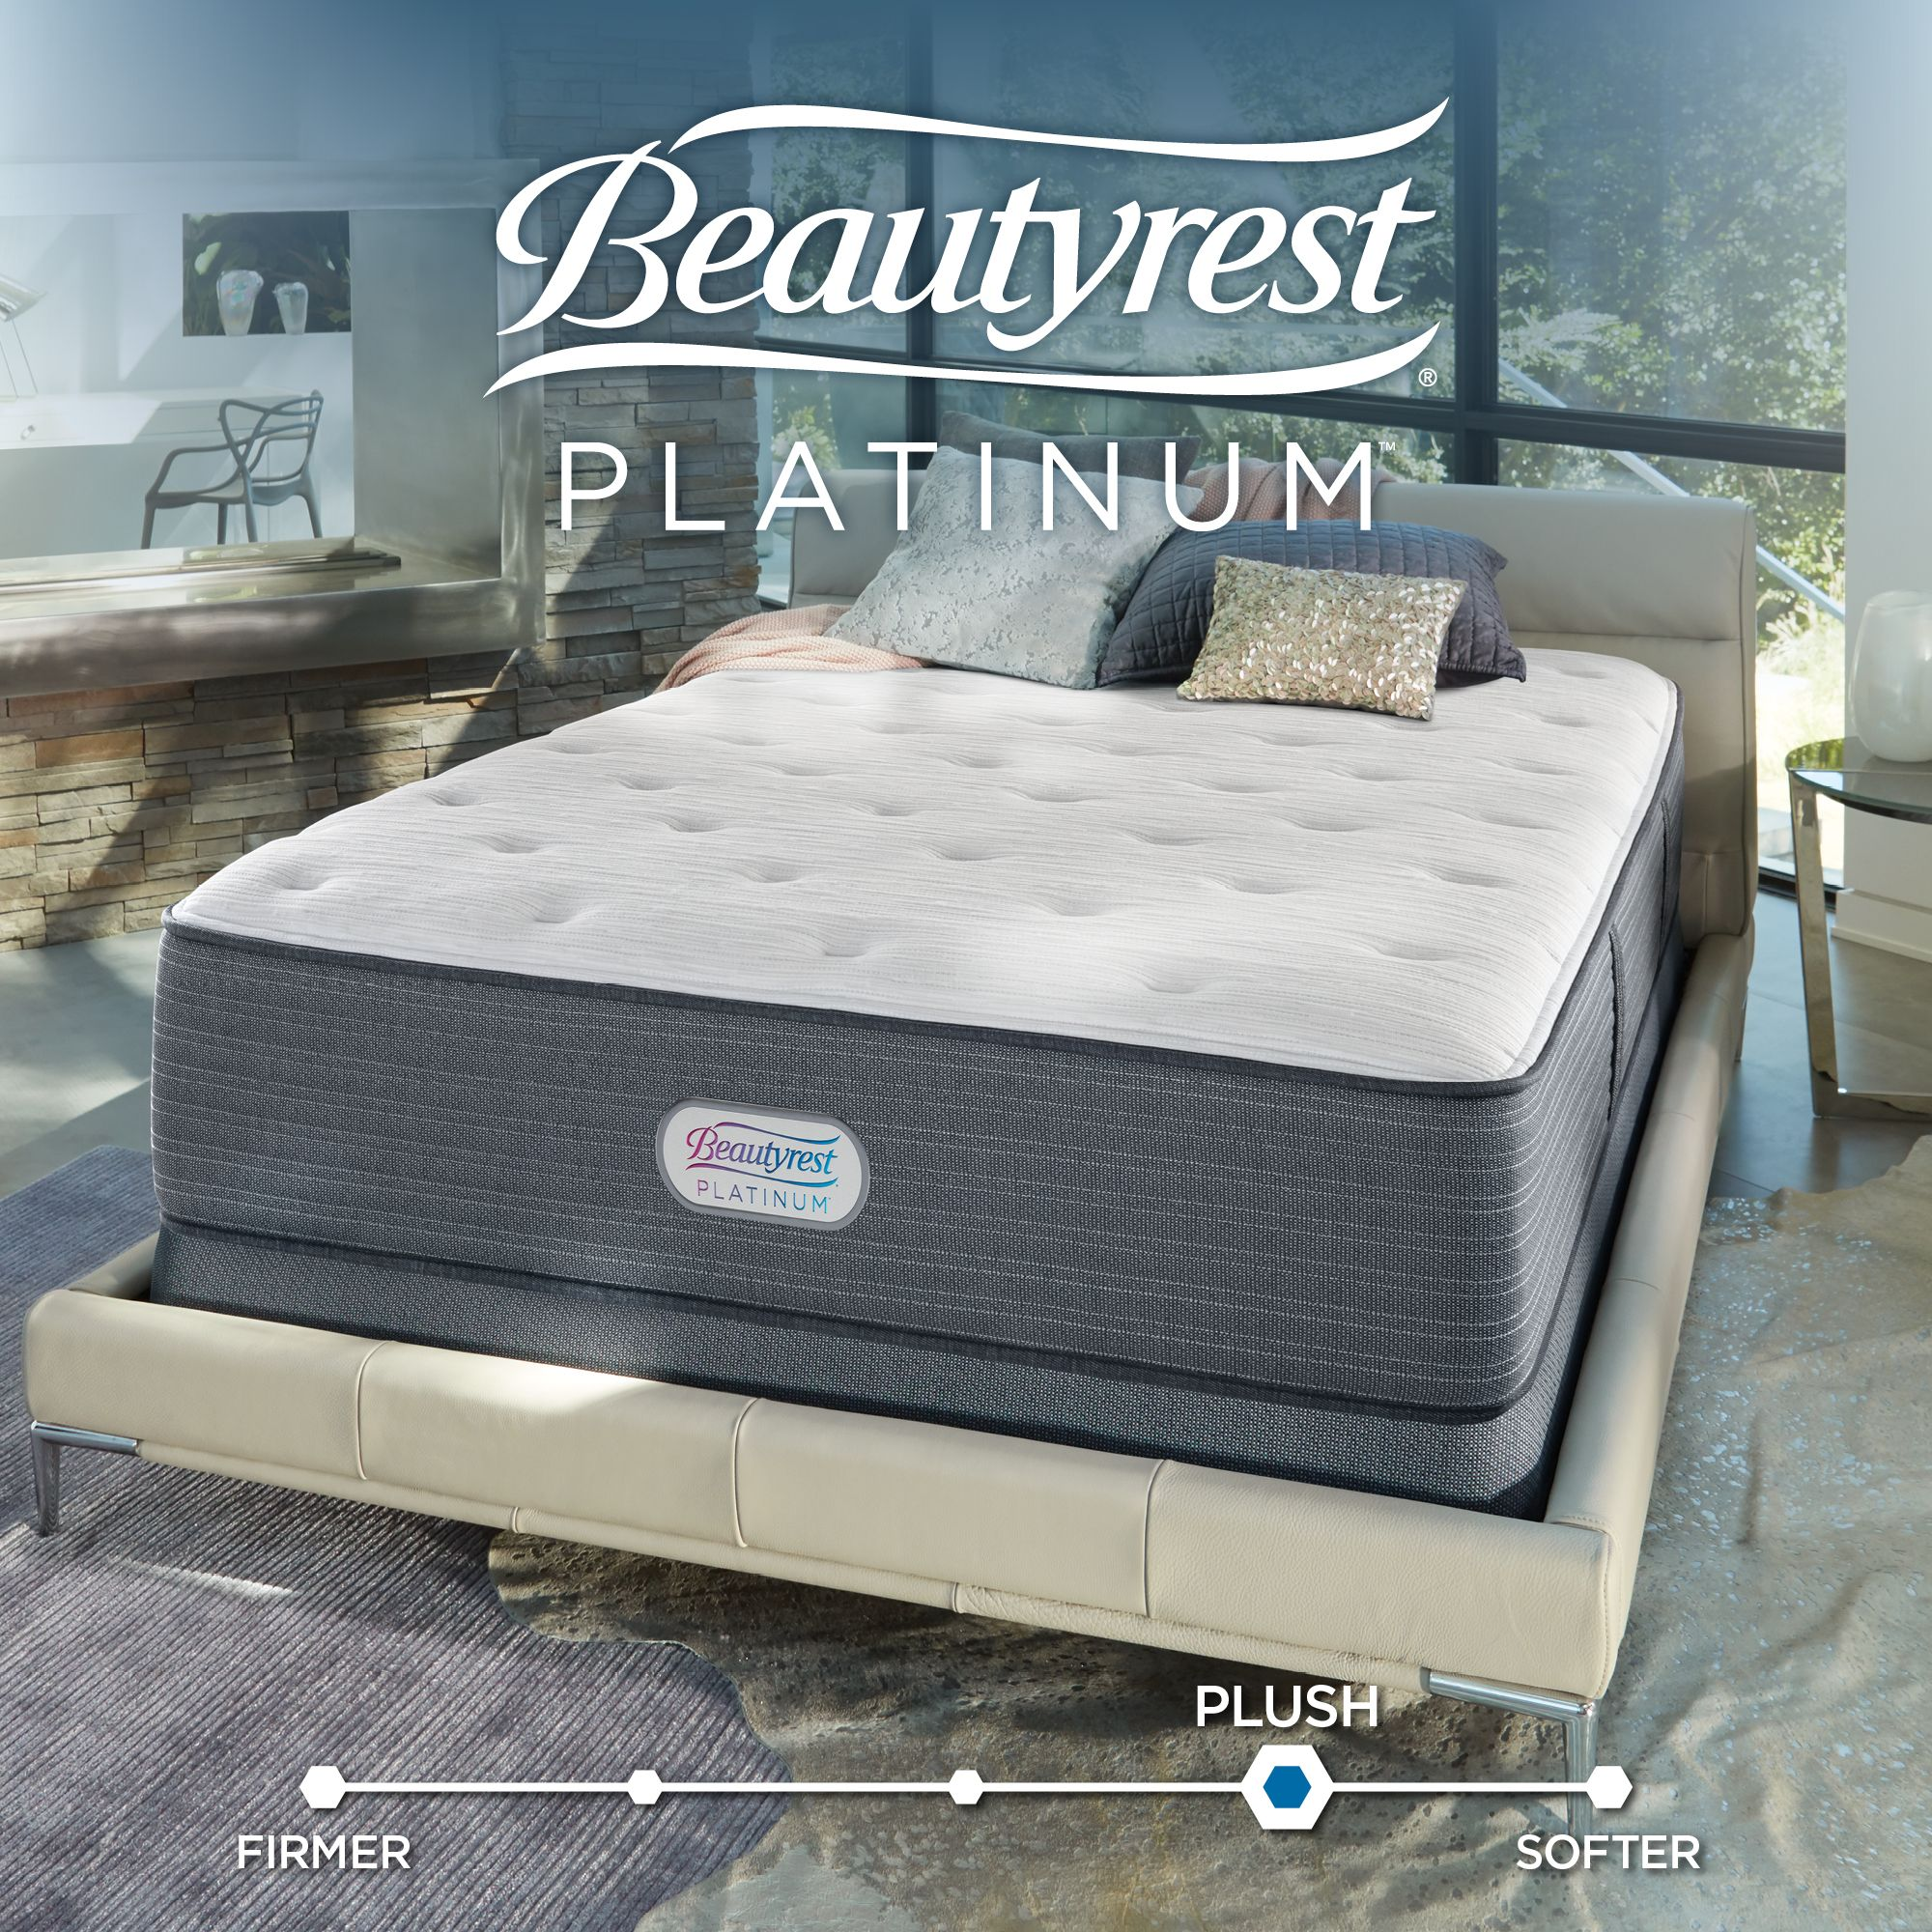 09965008afd MAKE YOUR BED A SMART BED – After you receive delivery of your Beautyrest  Platinum mattress